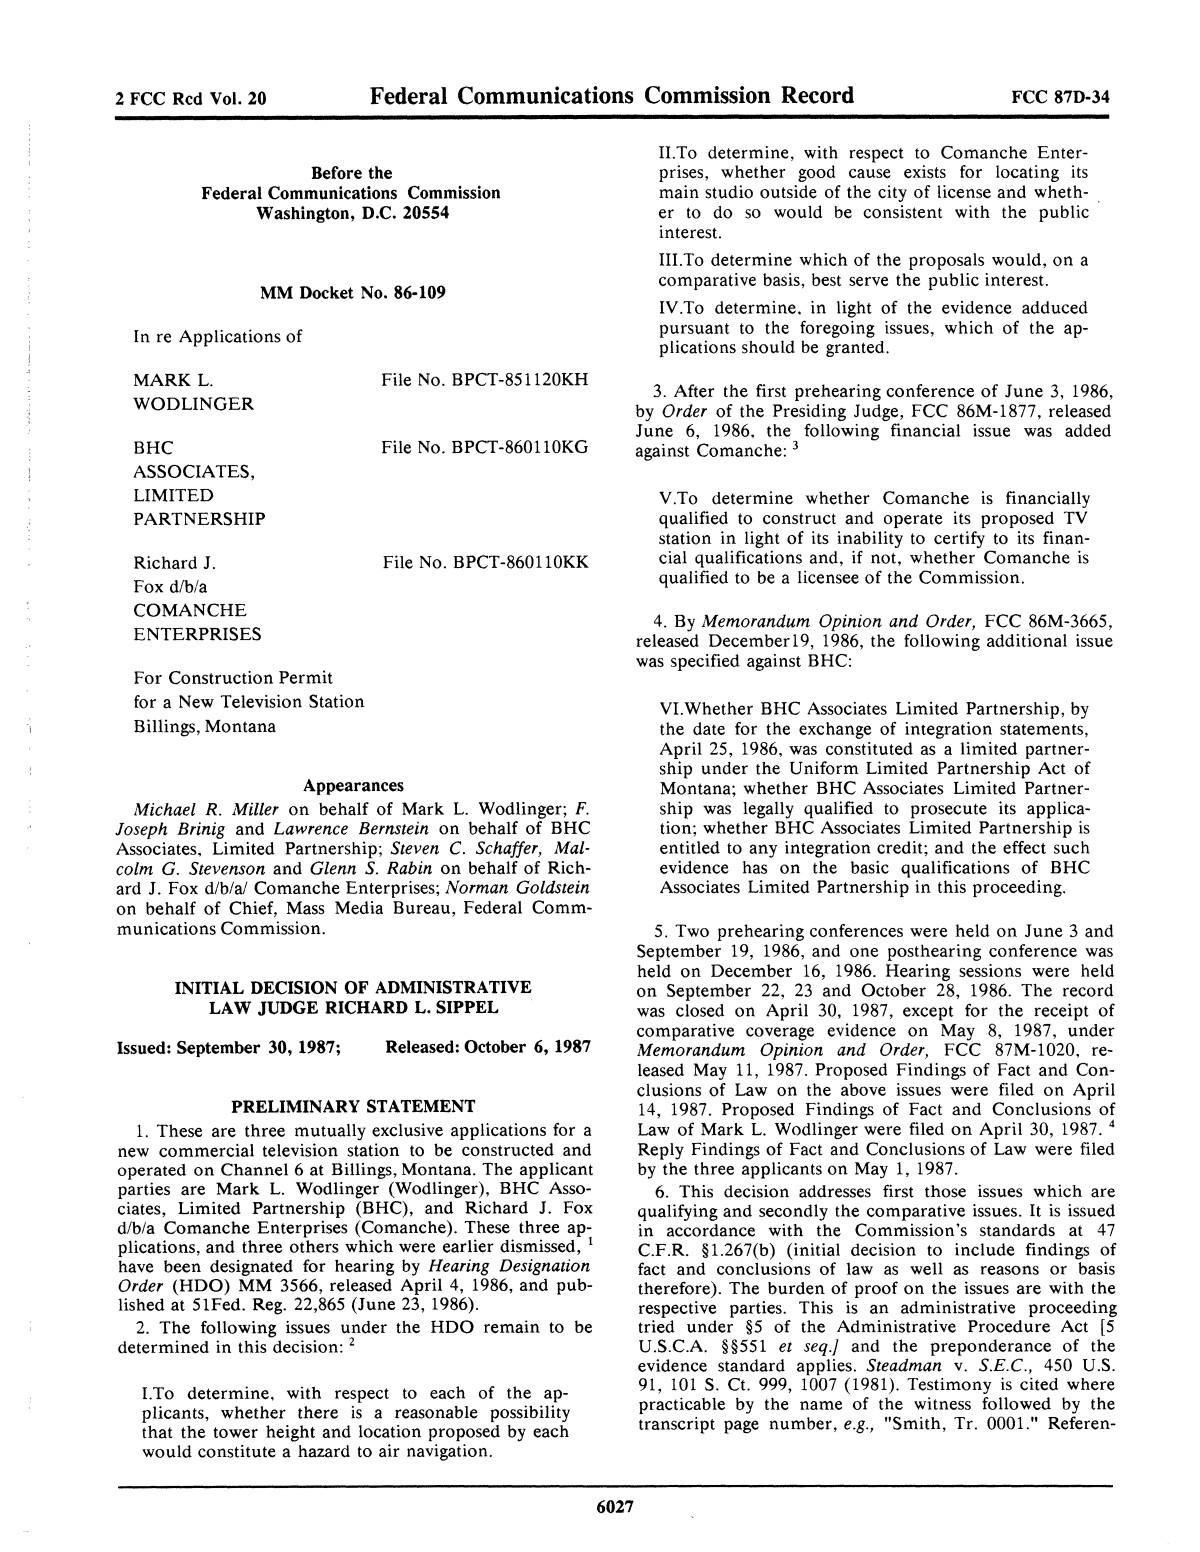 FCC Record, Volume 2, No. 20, Pages 5848 to 6225, September 28 - October 9, 1987                                                                                                      6027